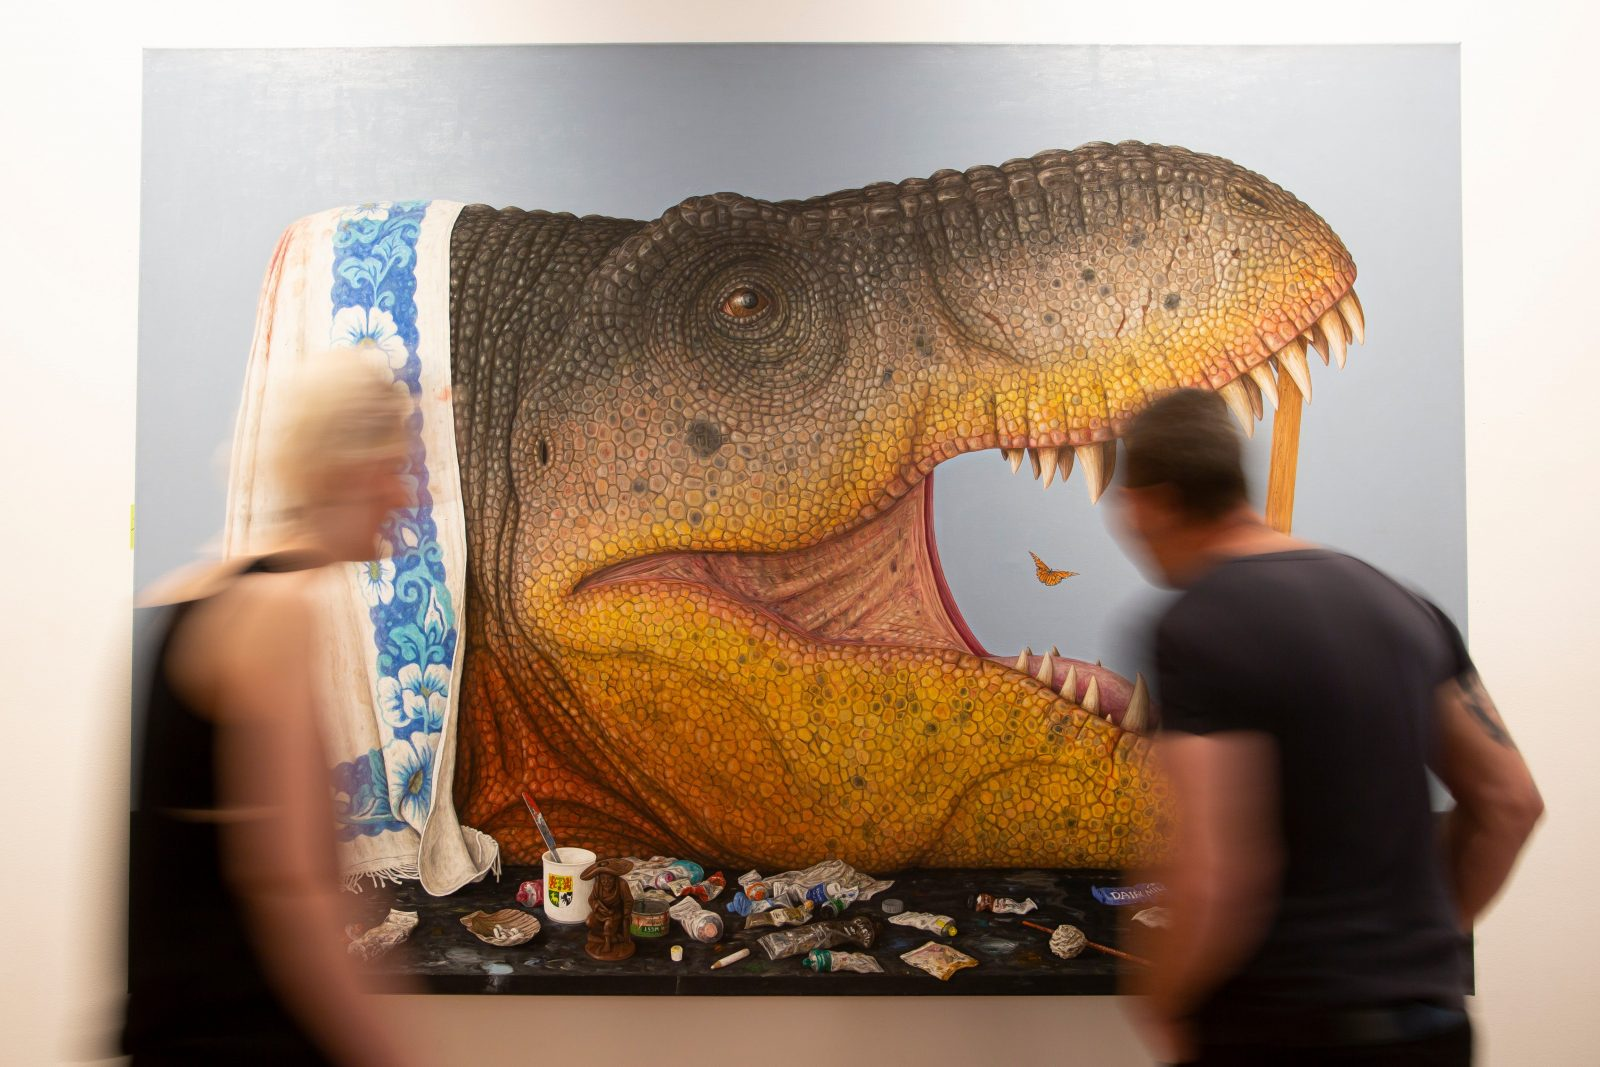 Andrew Sullivan, Survey into the Cretaceous, installation view, Wagga Wagga Art Gallery, 2019